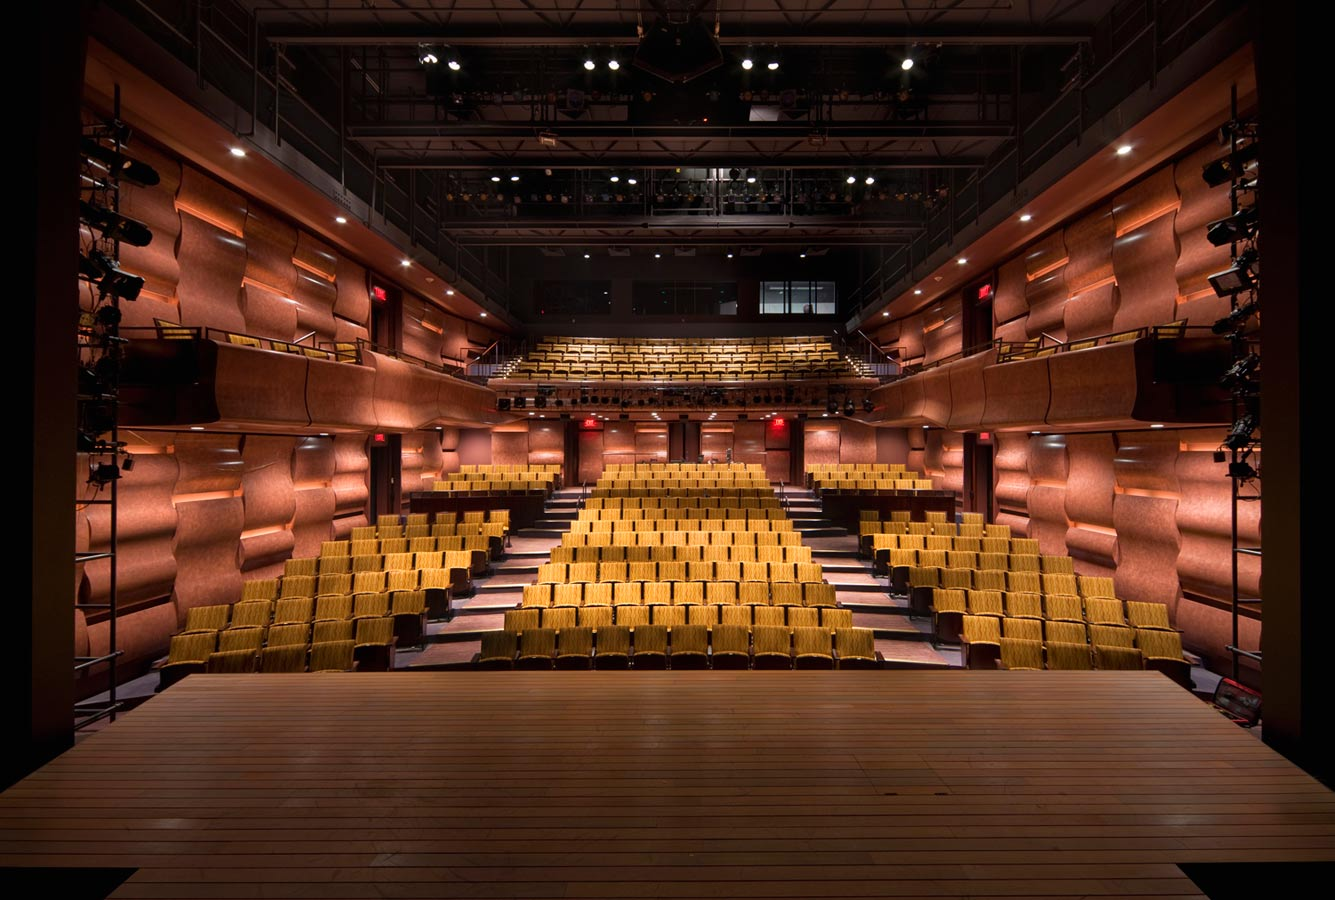 <p>The proscenium opening is 30 feet wide by 22 feet tall, with a stage house height of 70 feet. The theater is one of the most accessible performance venues in the region. In addition to having prime performance seats in all wheelchair accessible areas, the main level of the building, stage, and back-of-house areas are all aligned with the center of the theater. A state-of-the-art assisted listening system is also available for those with hearing impairments. <br> <small>© Peter Aaron/OTTO</small></p>